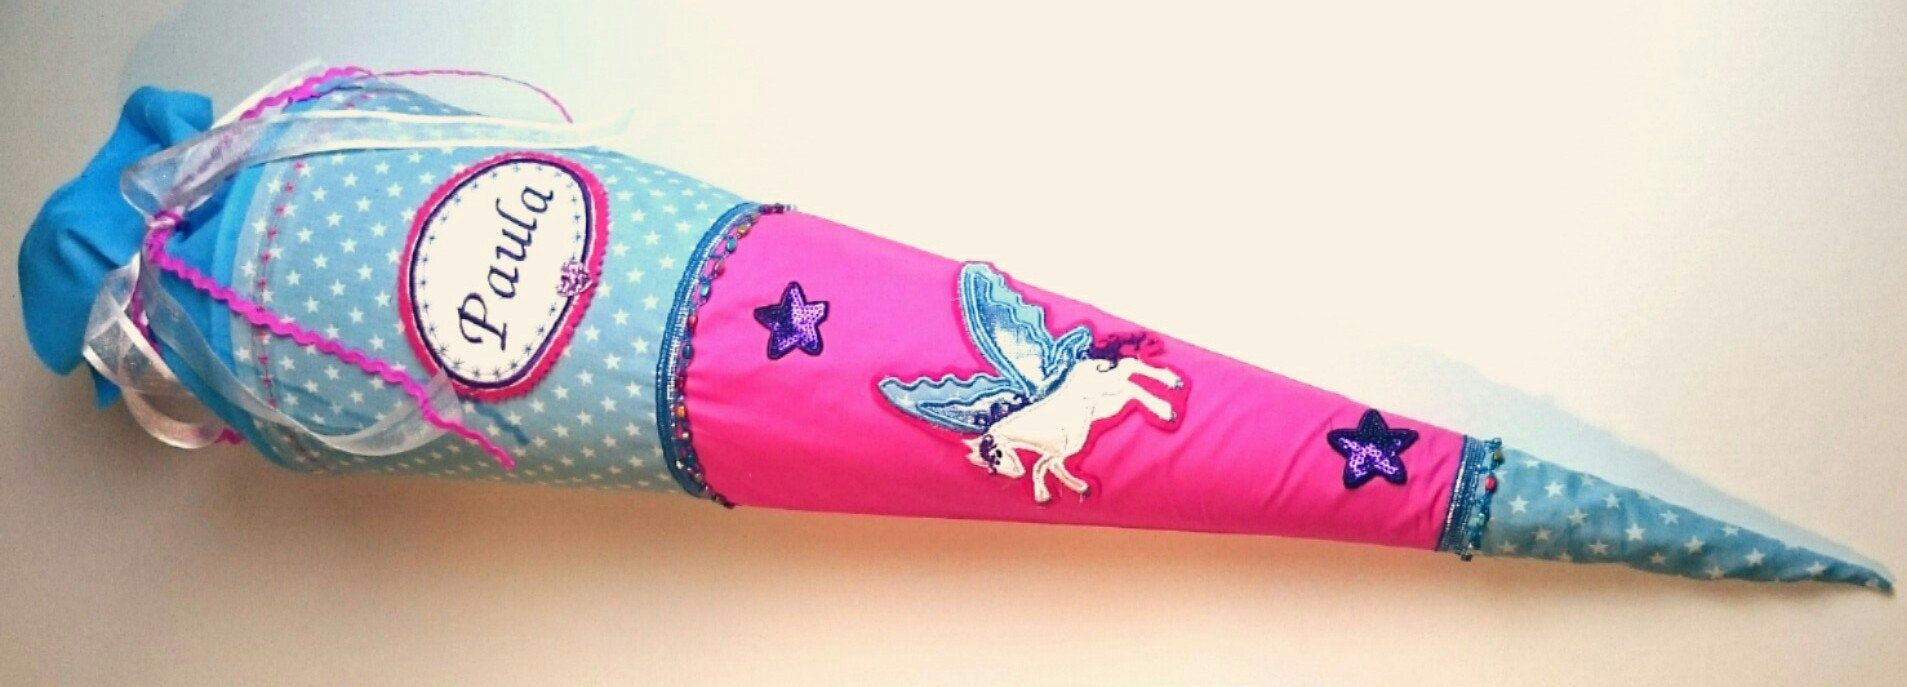 Schultute Sugar Bag Complete Rohling 70 Or 85 Cm Horse Pegasus M Name Dawanda And Later Pillow Inlet In 2020 Pegasus Fabric Covered Little Girls